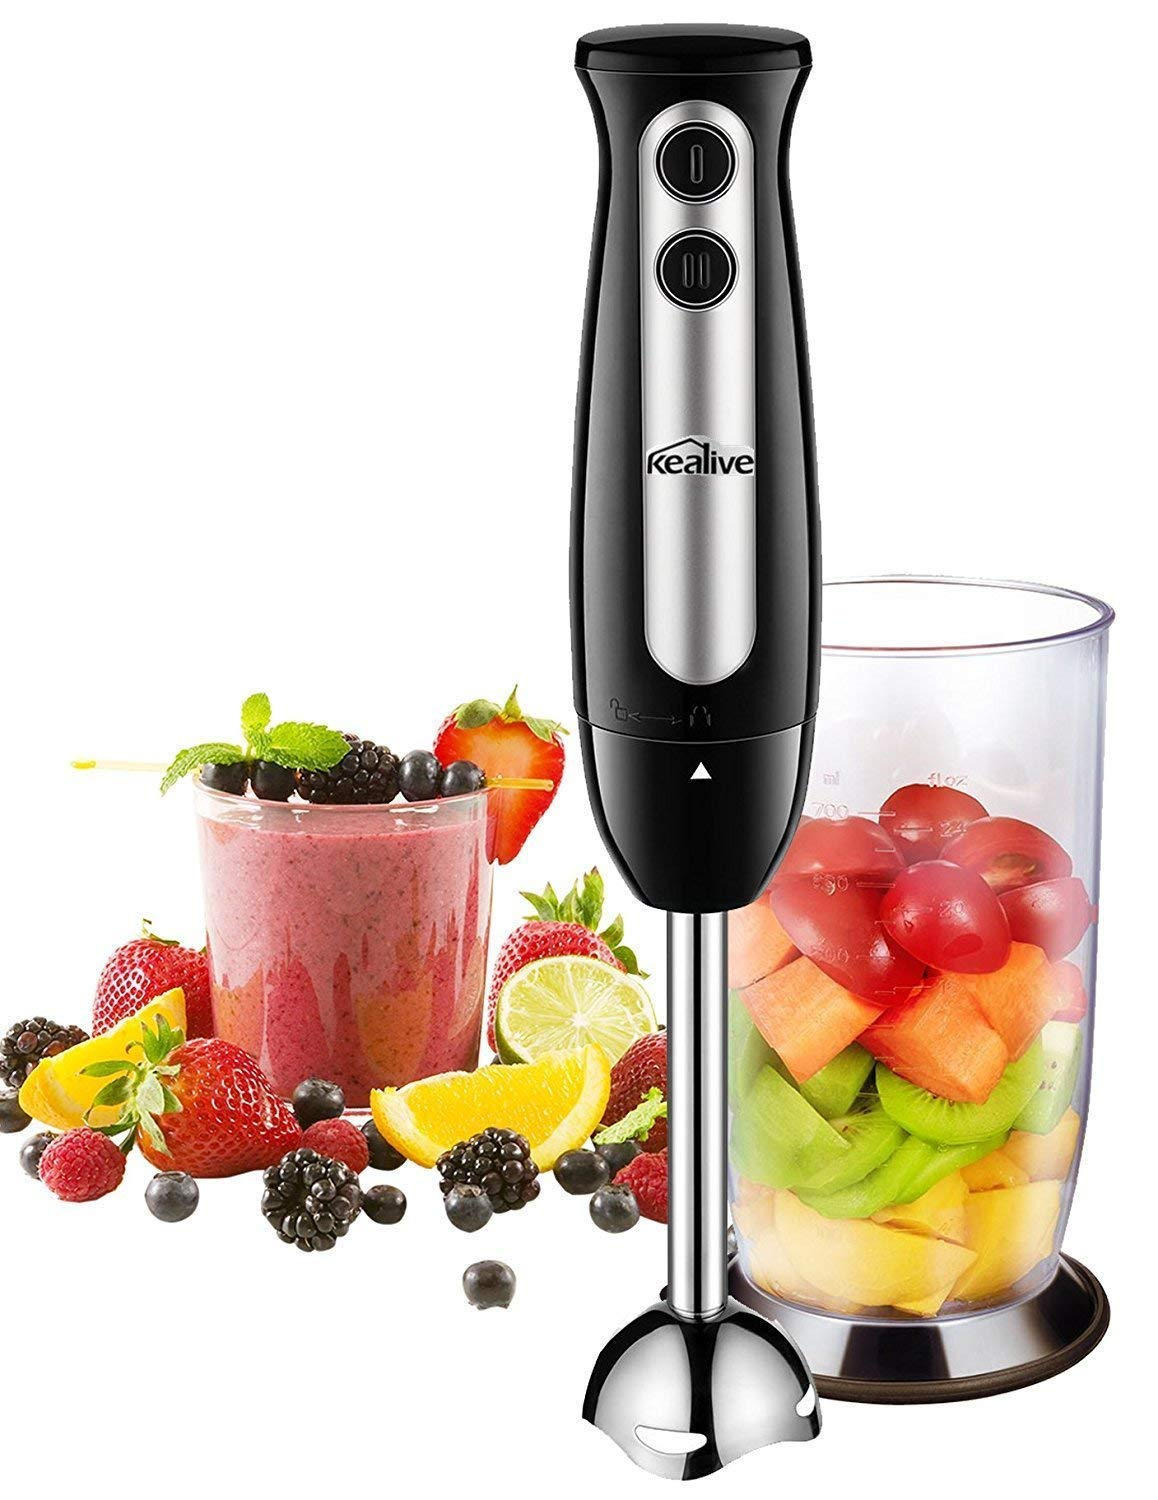 Immersion Blender, Kealive 2-in-1 Hand Blender with 700ml BPA-Free Beaker, 304 Stainless Steel Blades, Ergonomic Handle, 2-Speed Immersion Hand Blender for Baby Food, Juices, Sauces and Soup, 300W by AICOK-